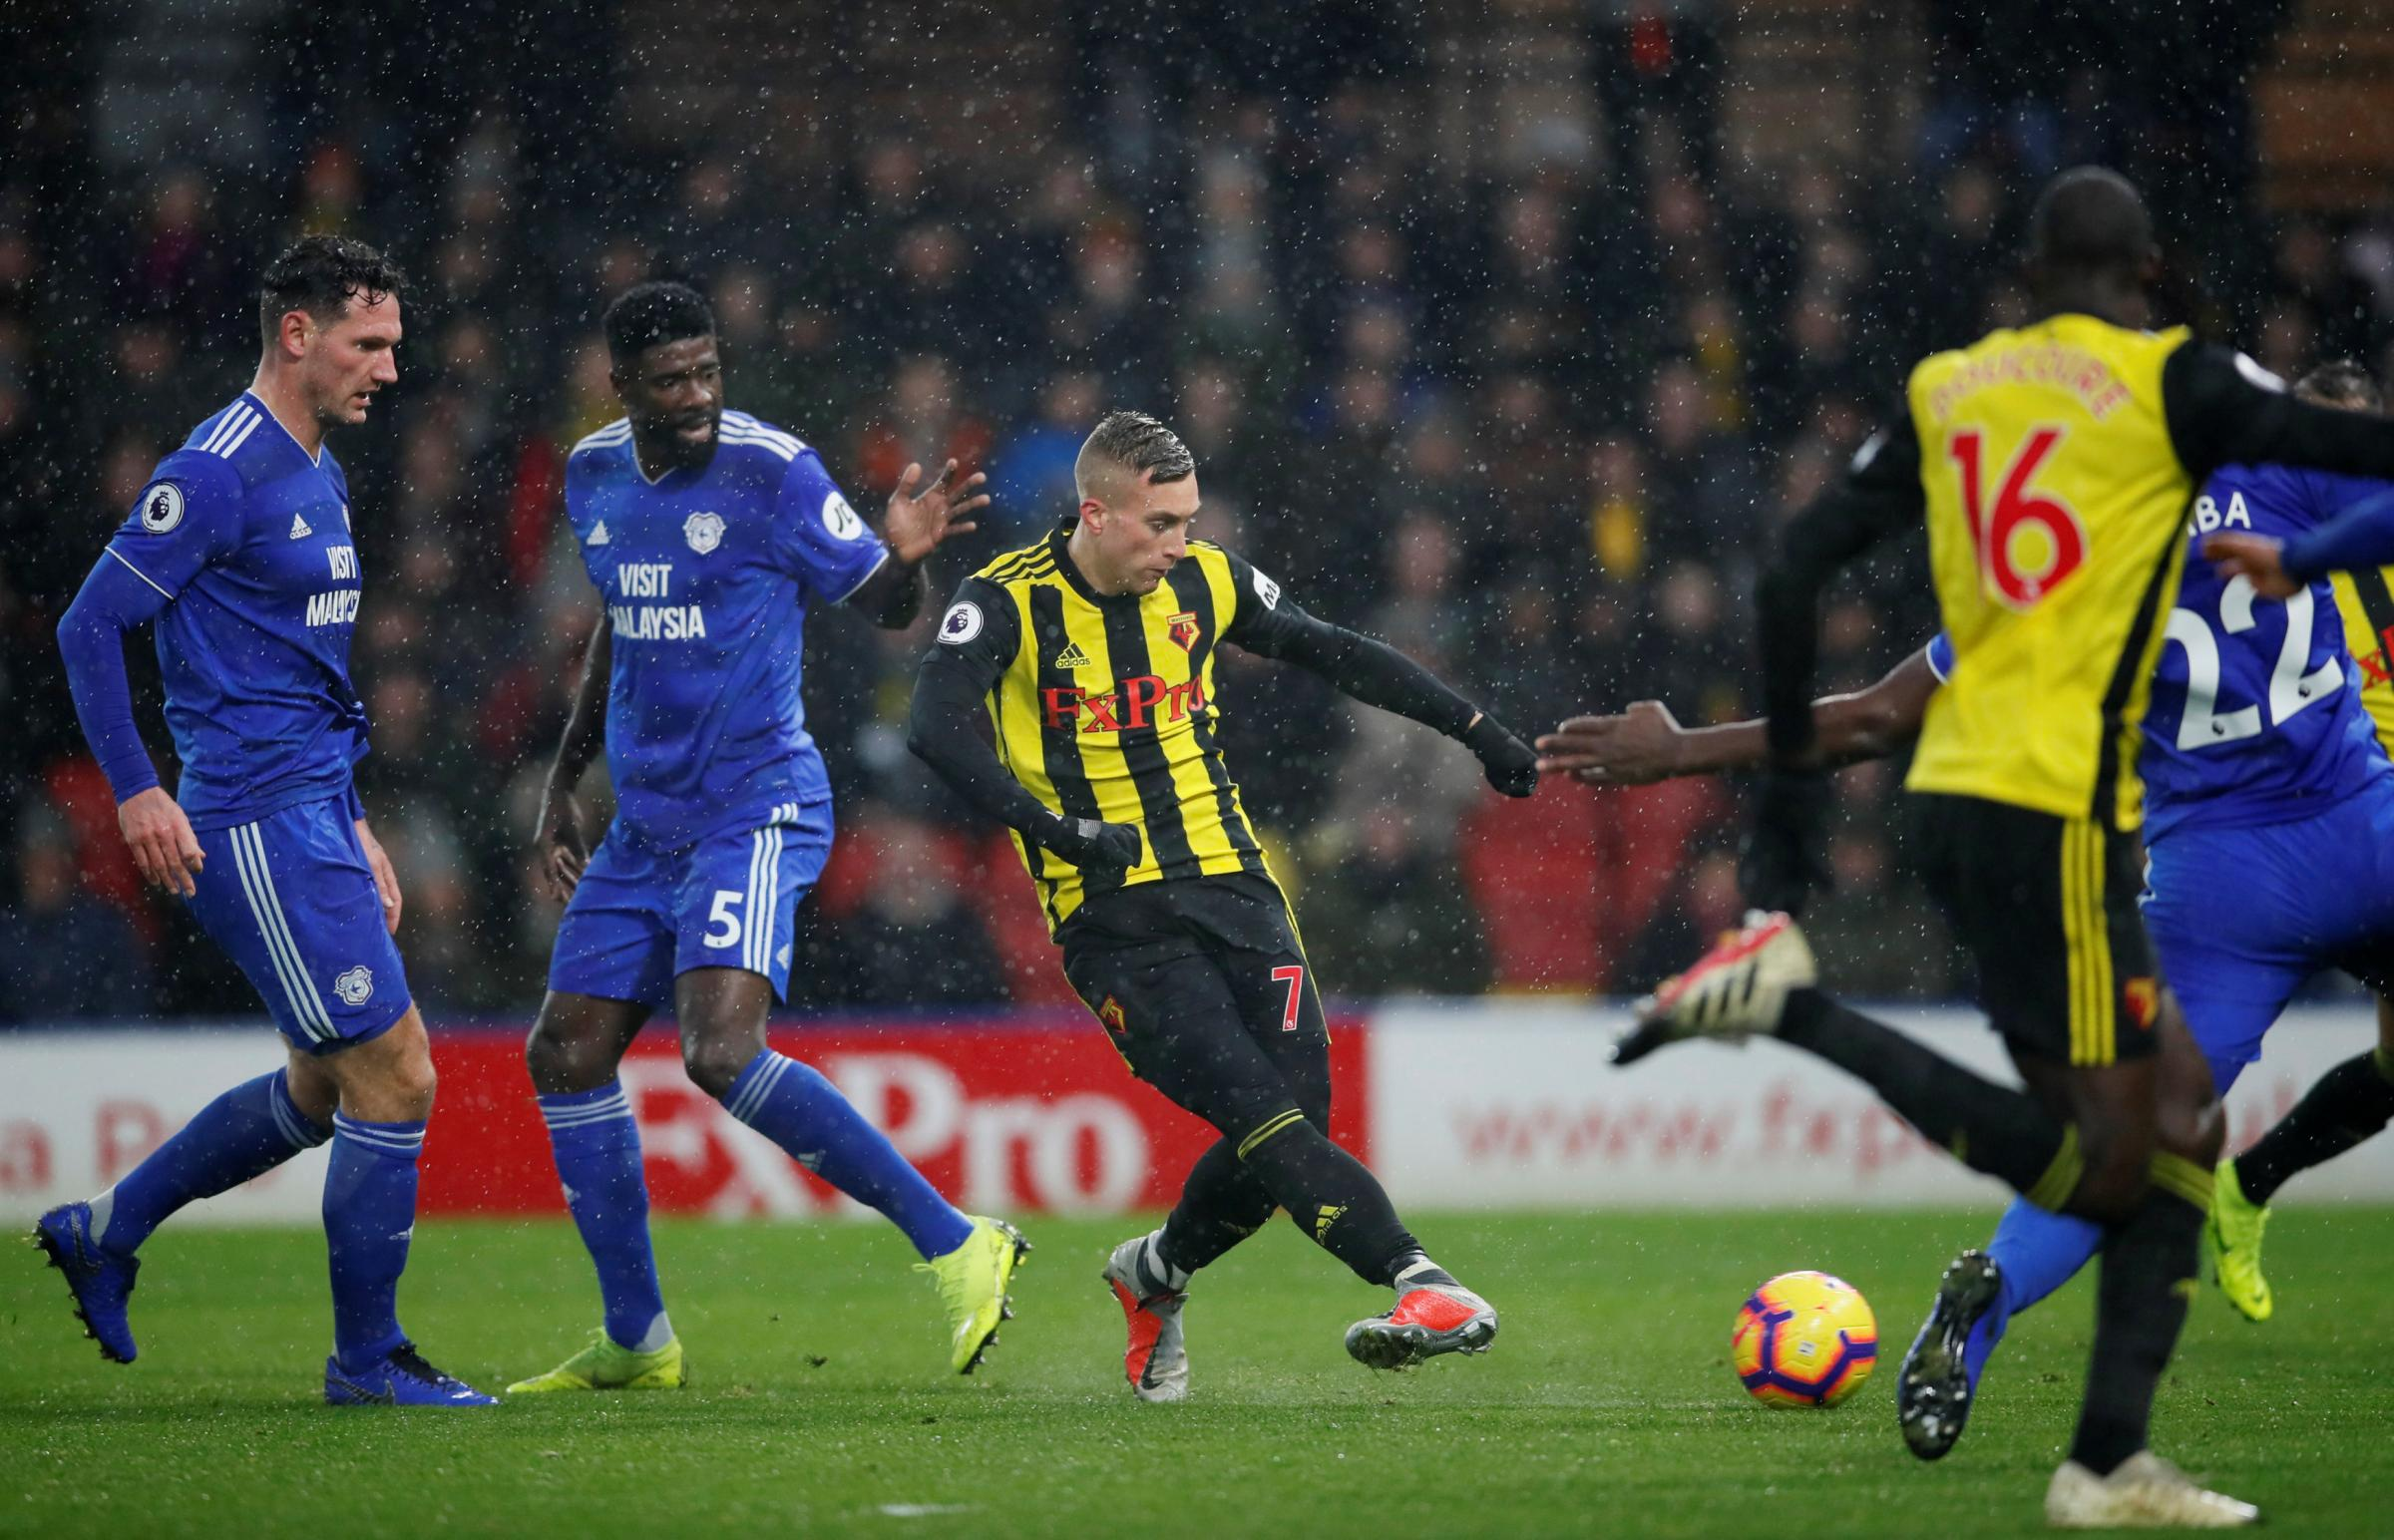 Gerard Deulofeu gives Watford the lead. Pictures: Action Images